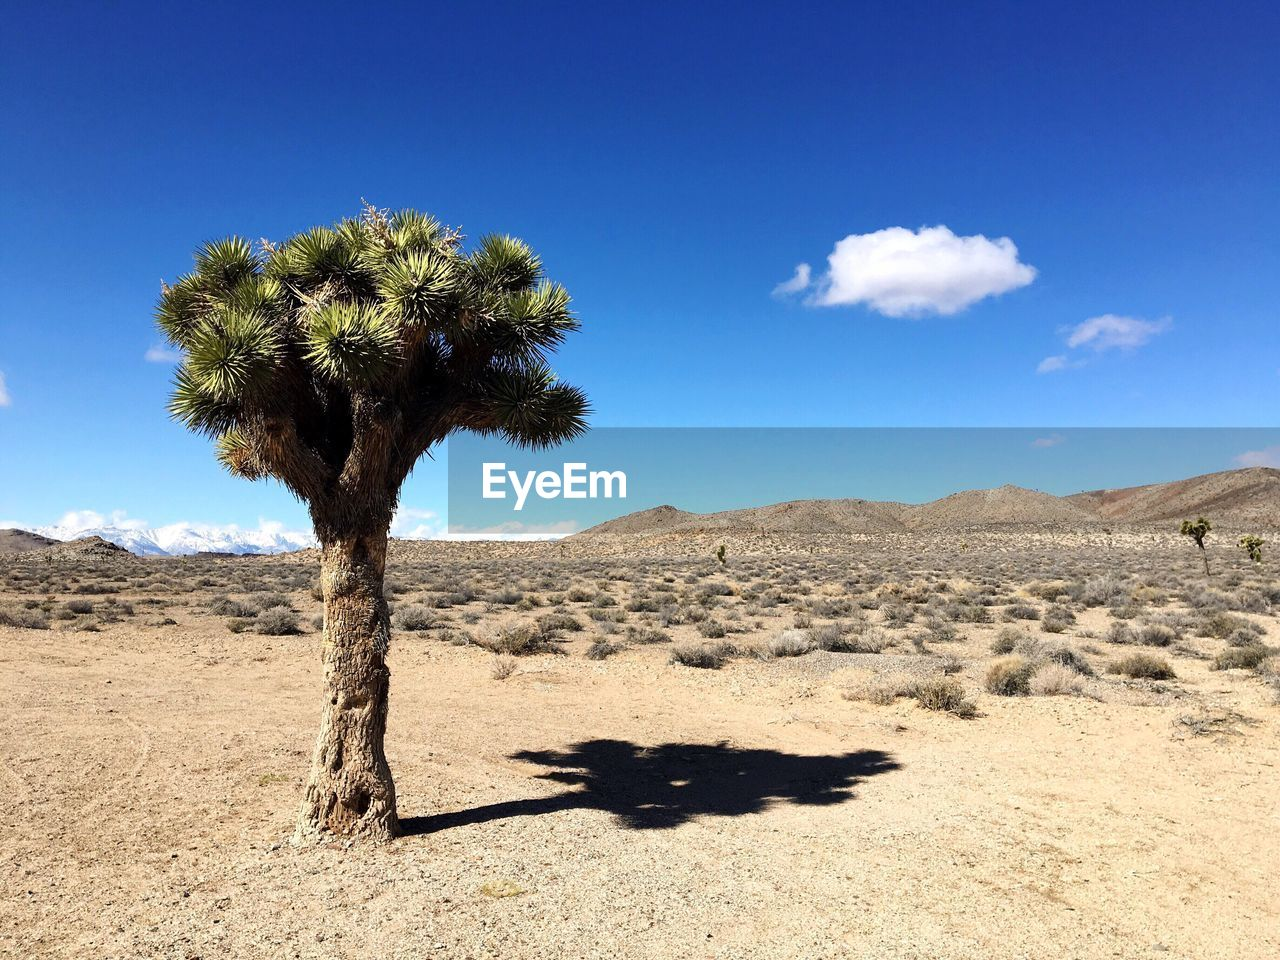 Scenic View Of Joshua Tree National Park Against Blue Sky During Sunny Day